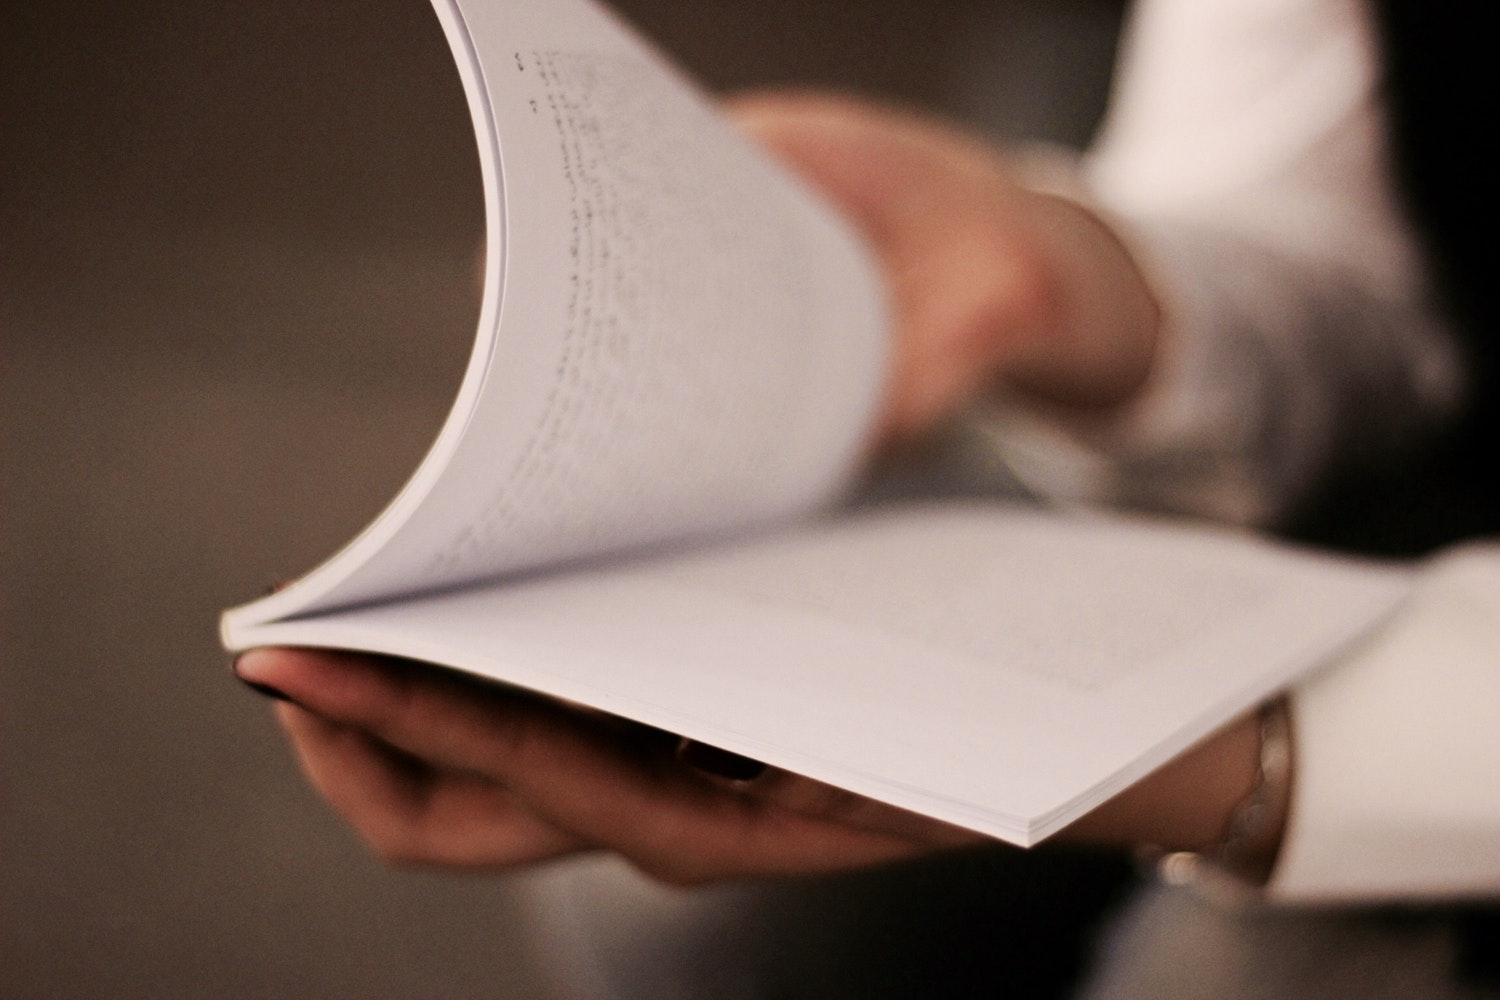 close up of hands holding paperback book